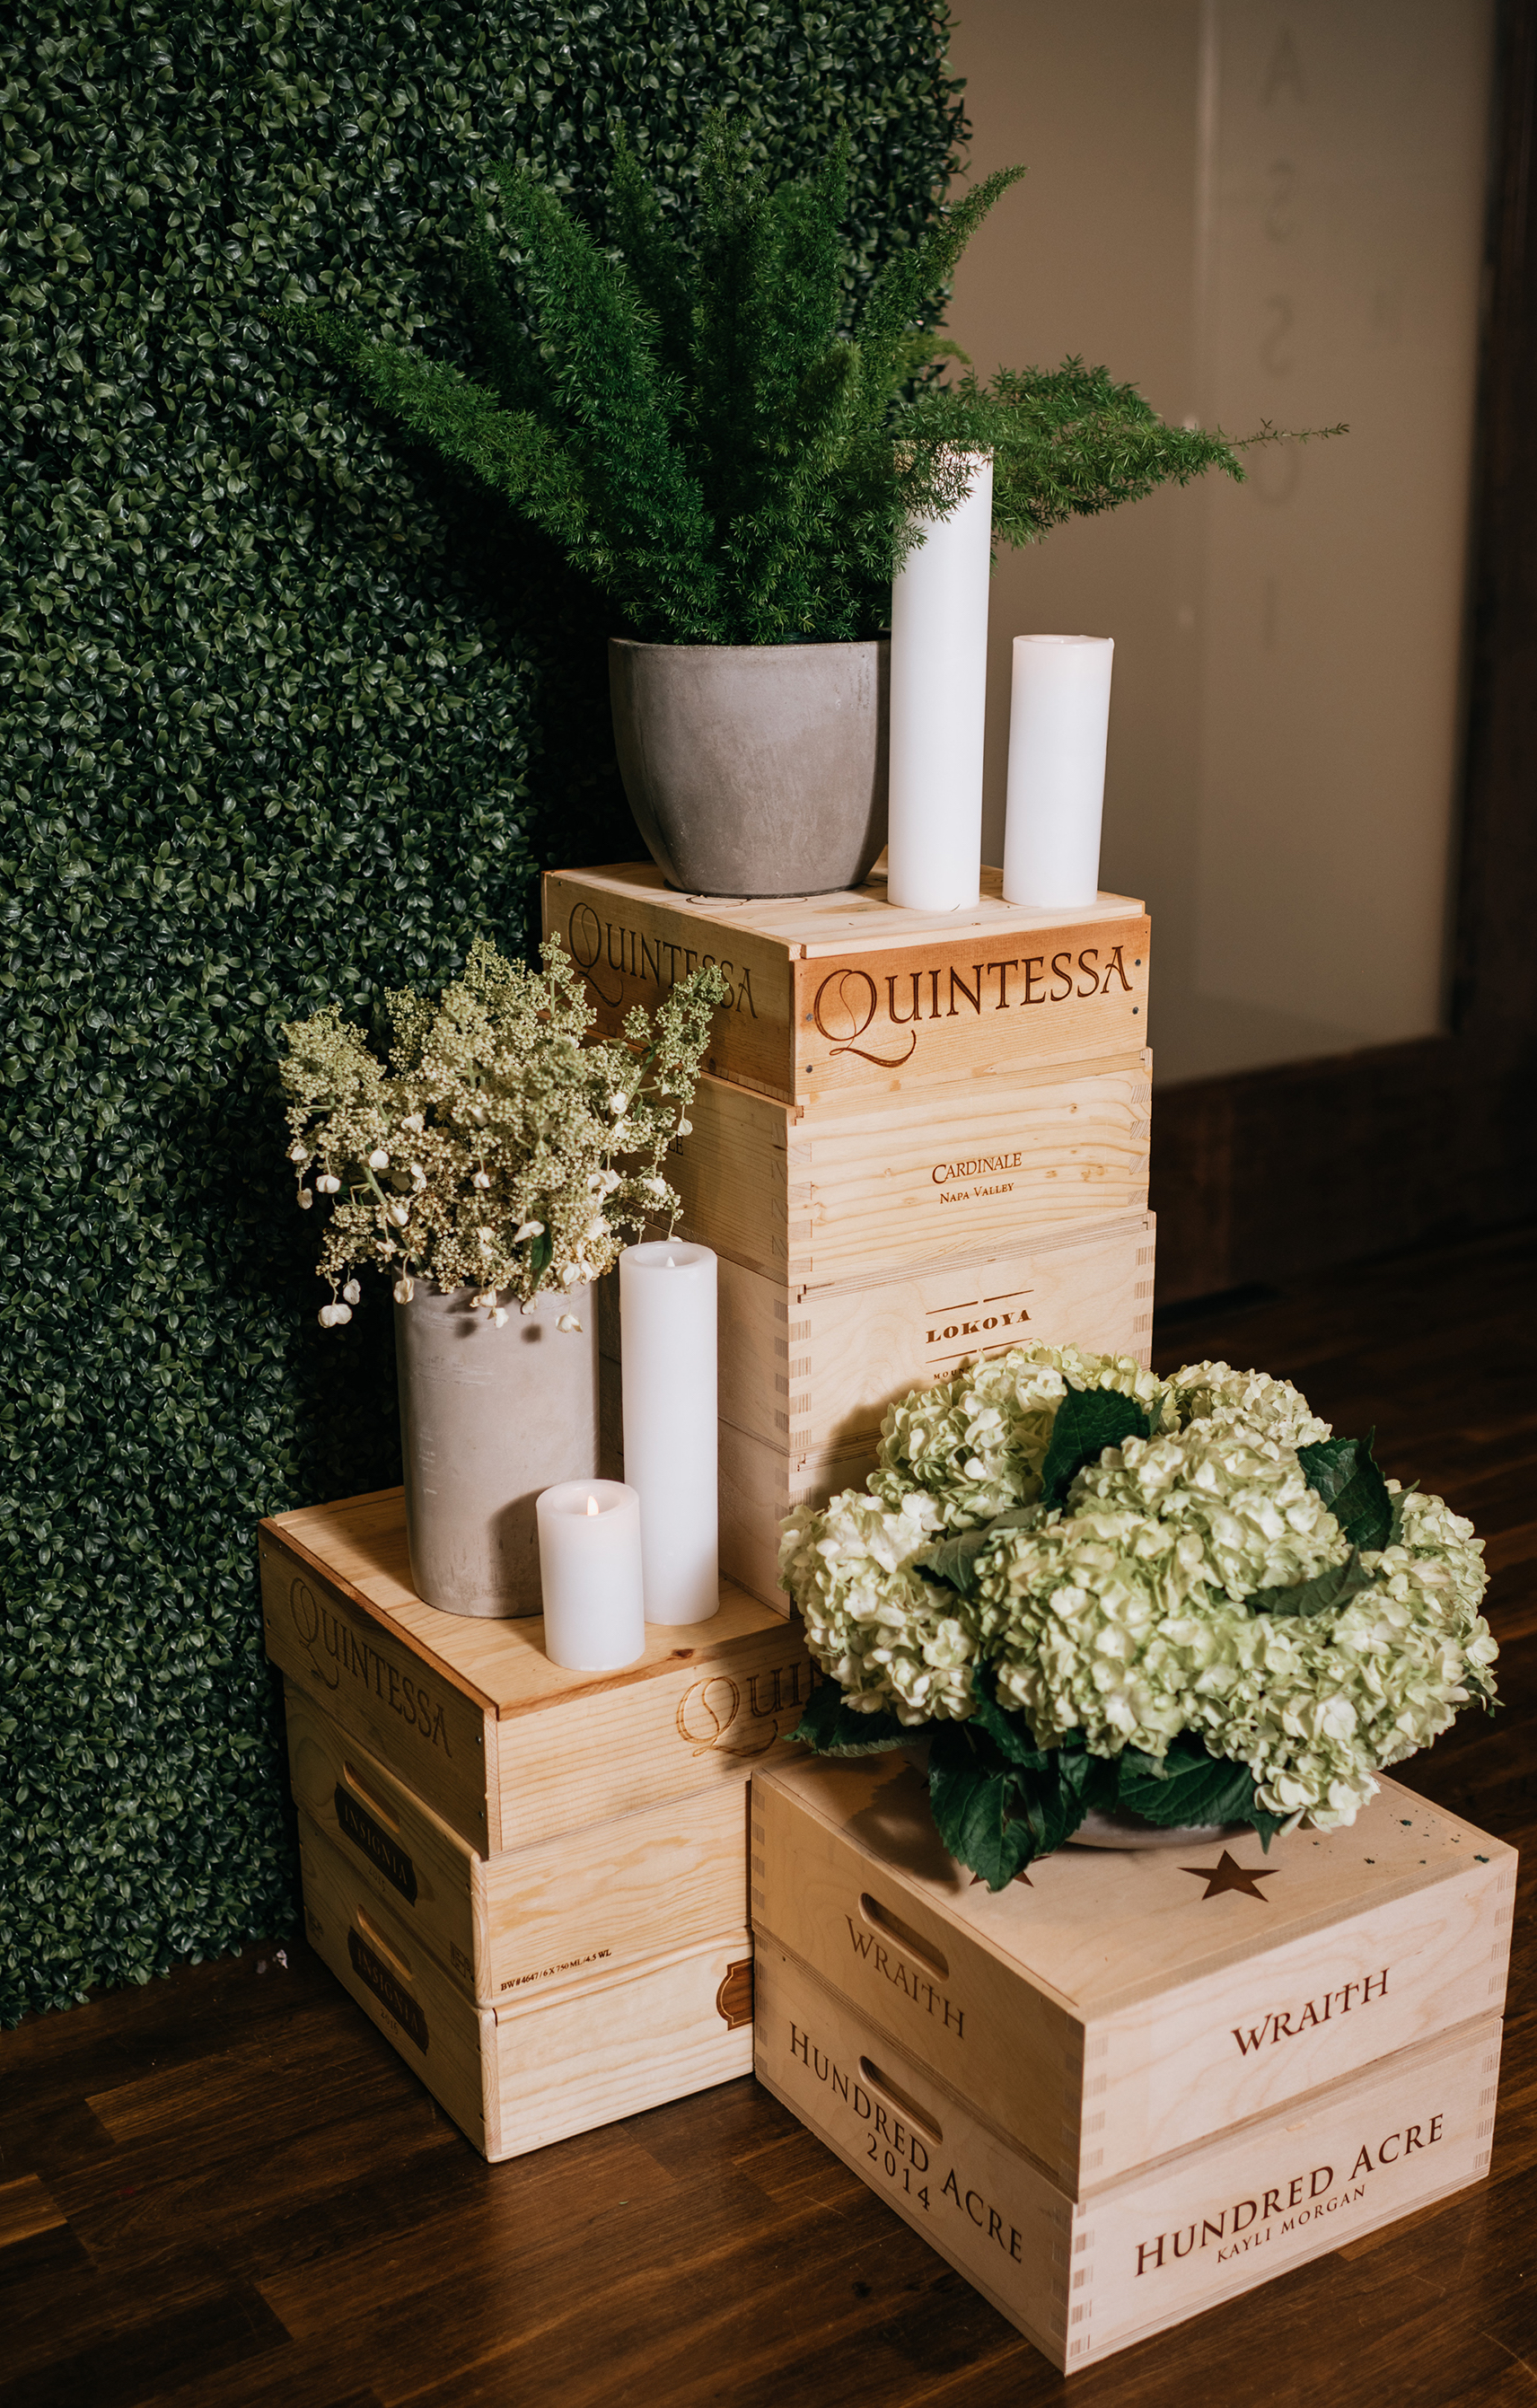 Wine barrels act as wedding decor with the greenery.